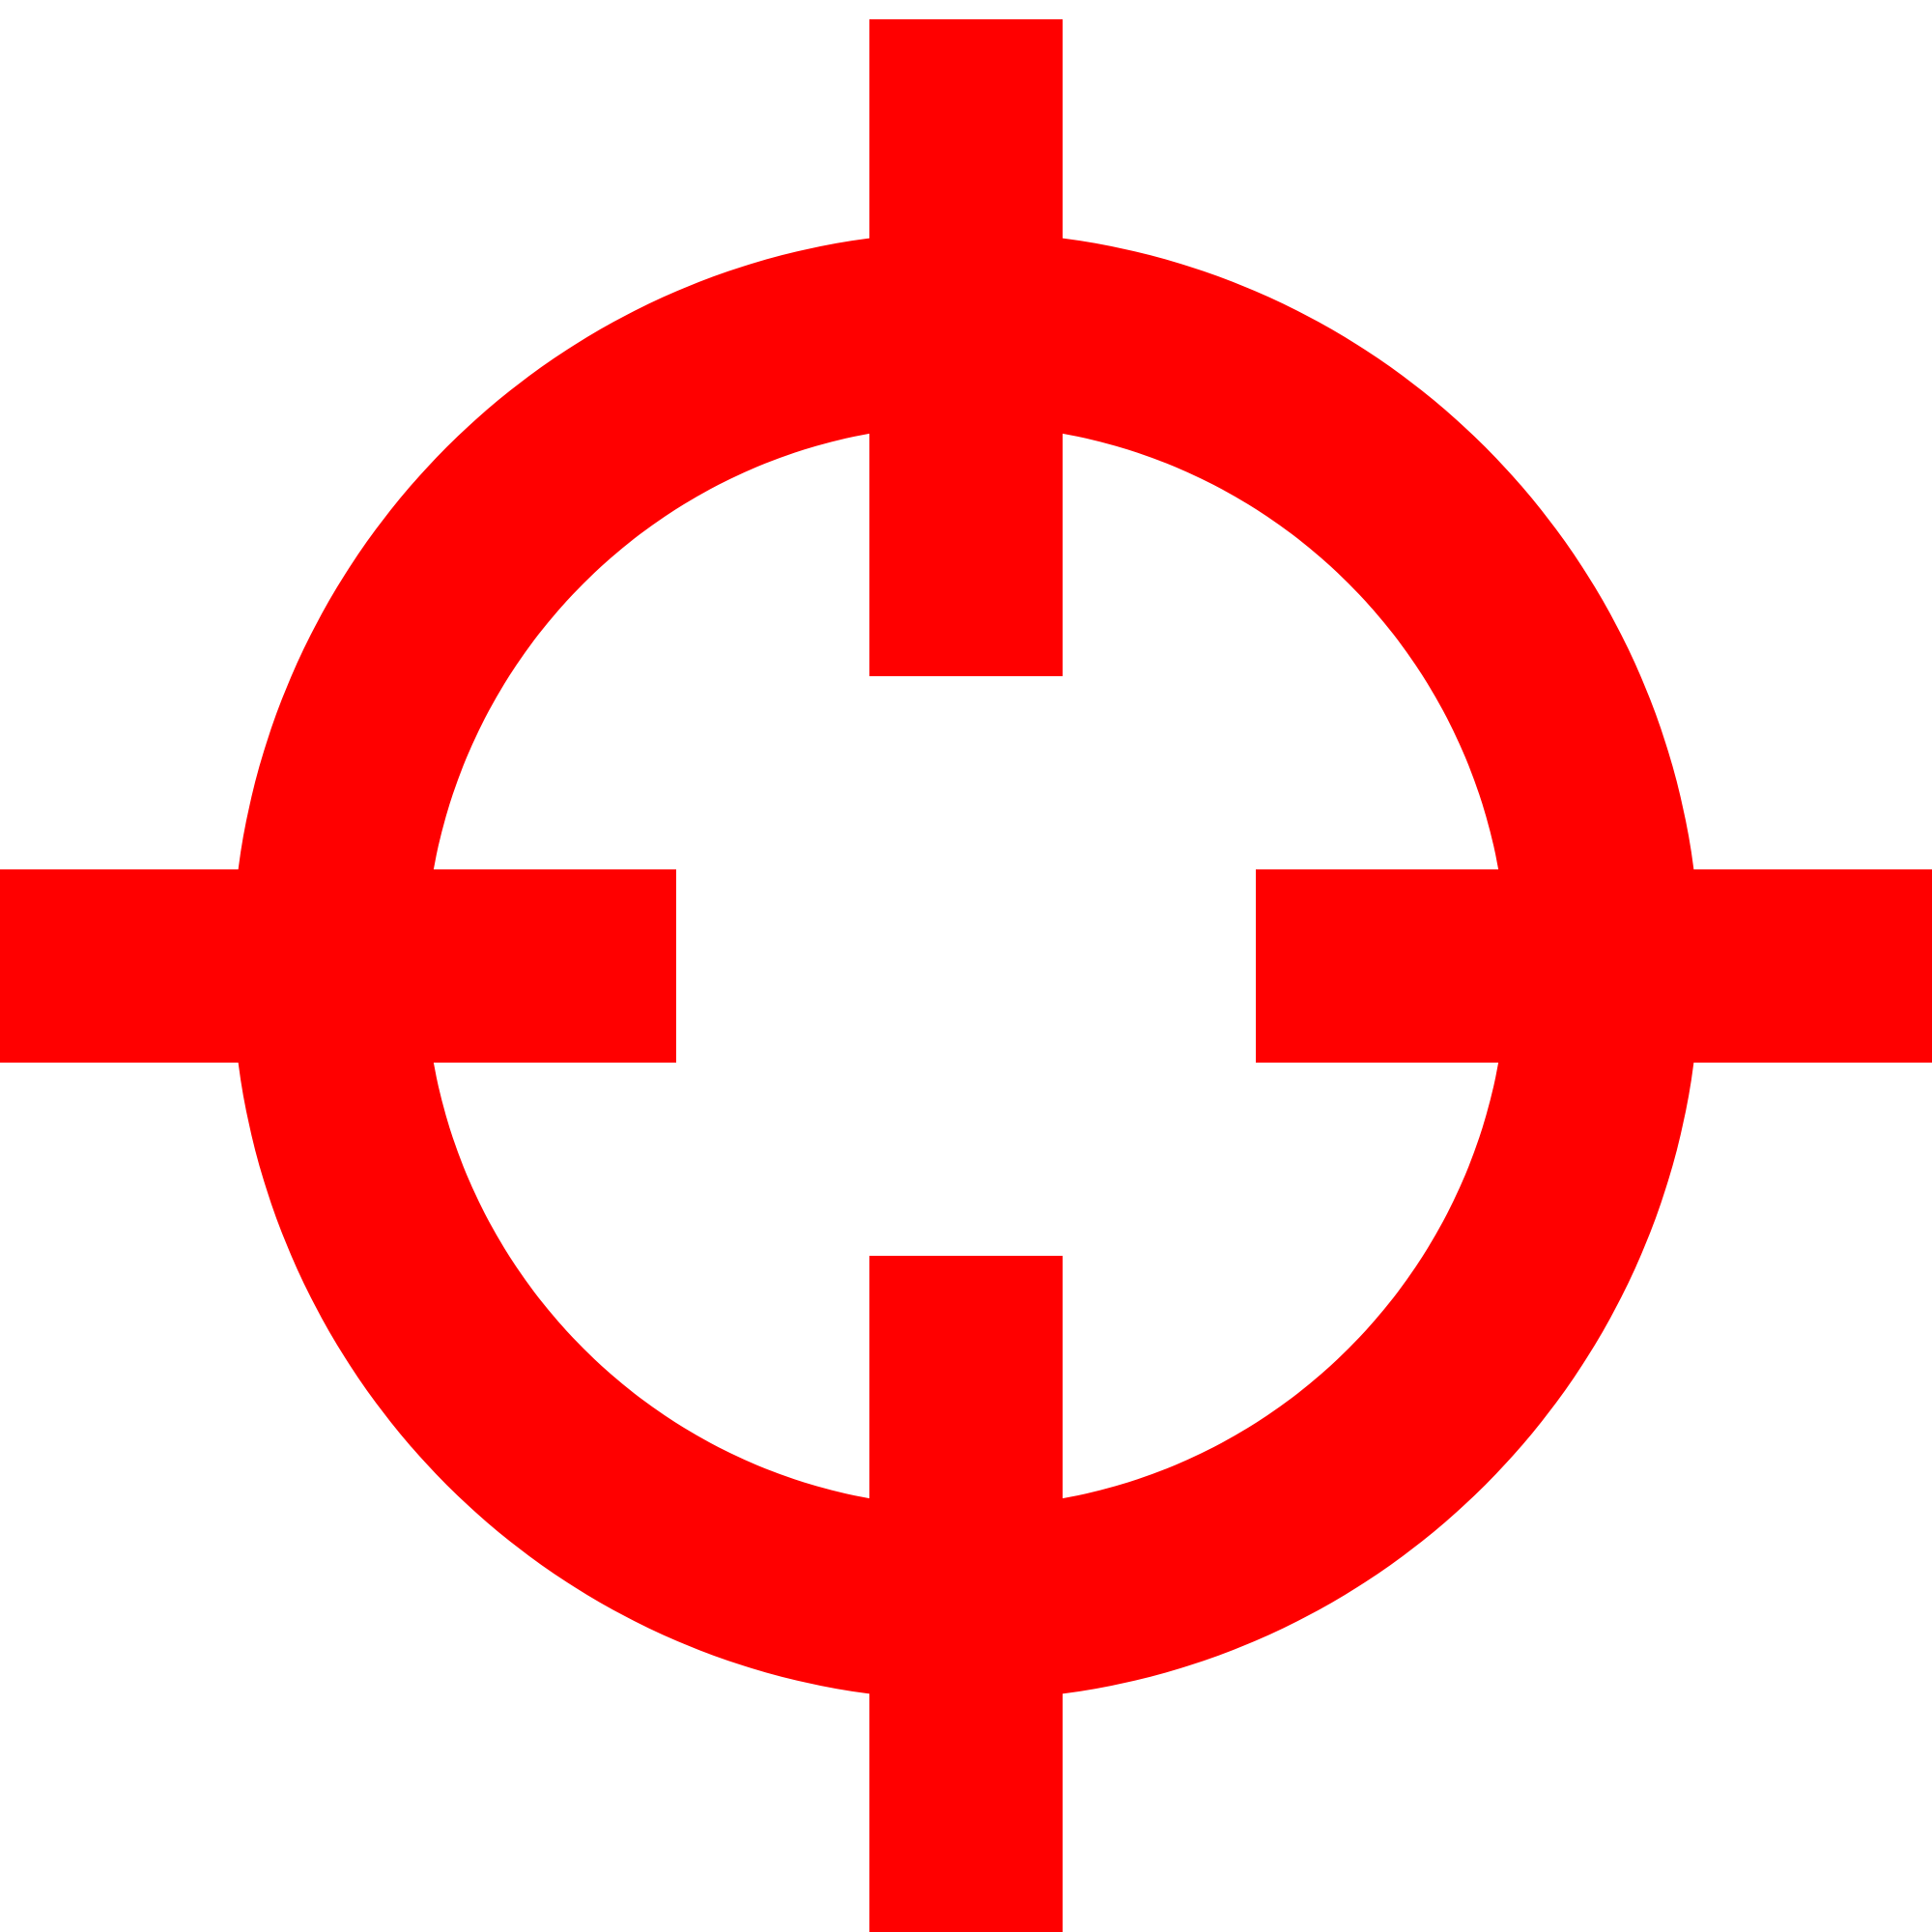 Red crosshair png. File crosshairs svg wikimedia